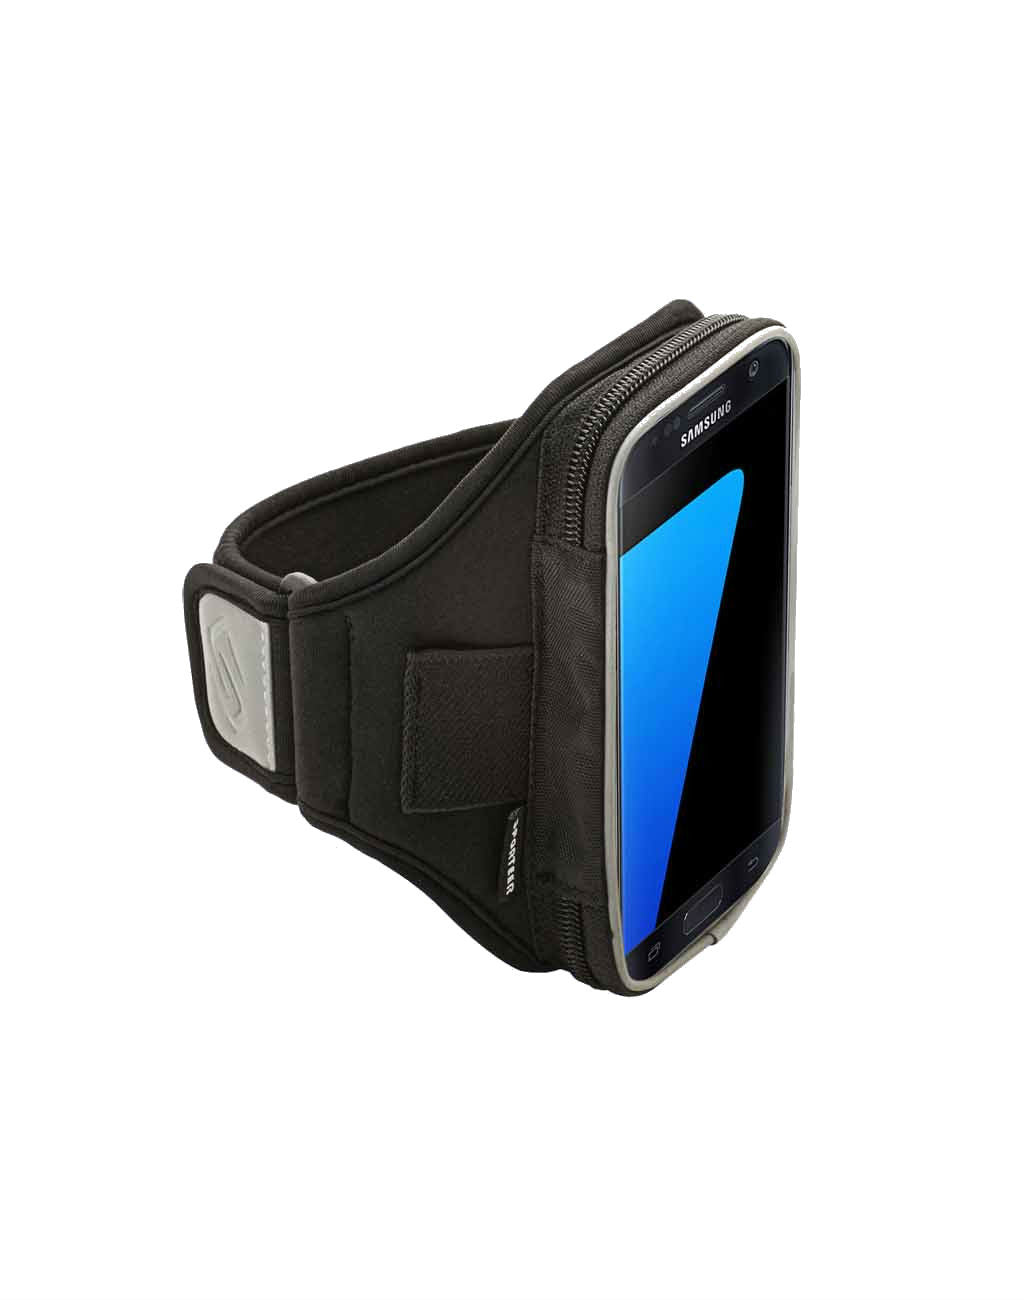 Velocity V150 Armband for iPhone 7 & 6/6S or Galaxy S7 Edge/S7 with CasesBlack_master_image